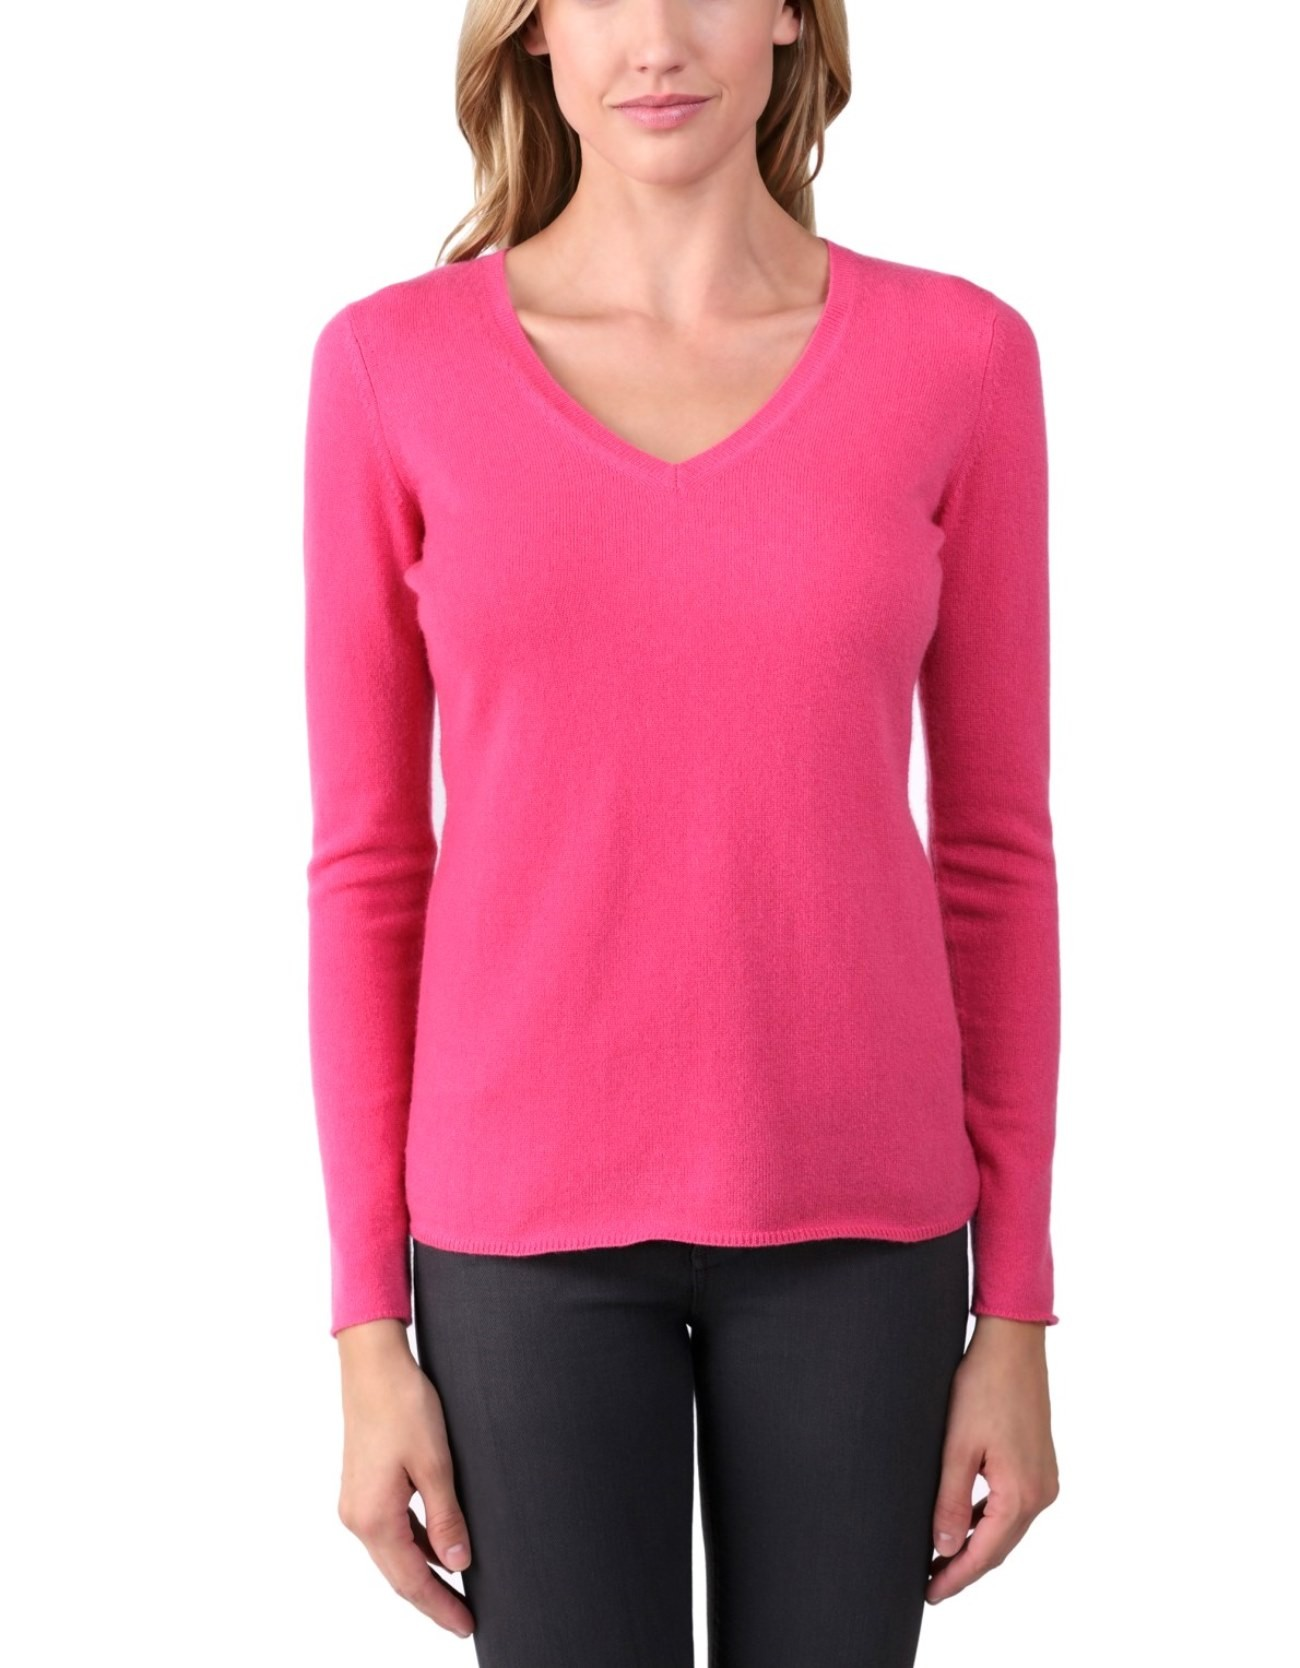 Fuchsia Ladies' V-Neck Sweater - 100% Cashmere Made in Scotland